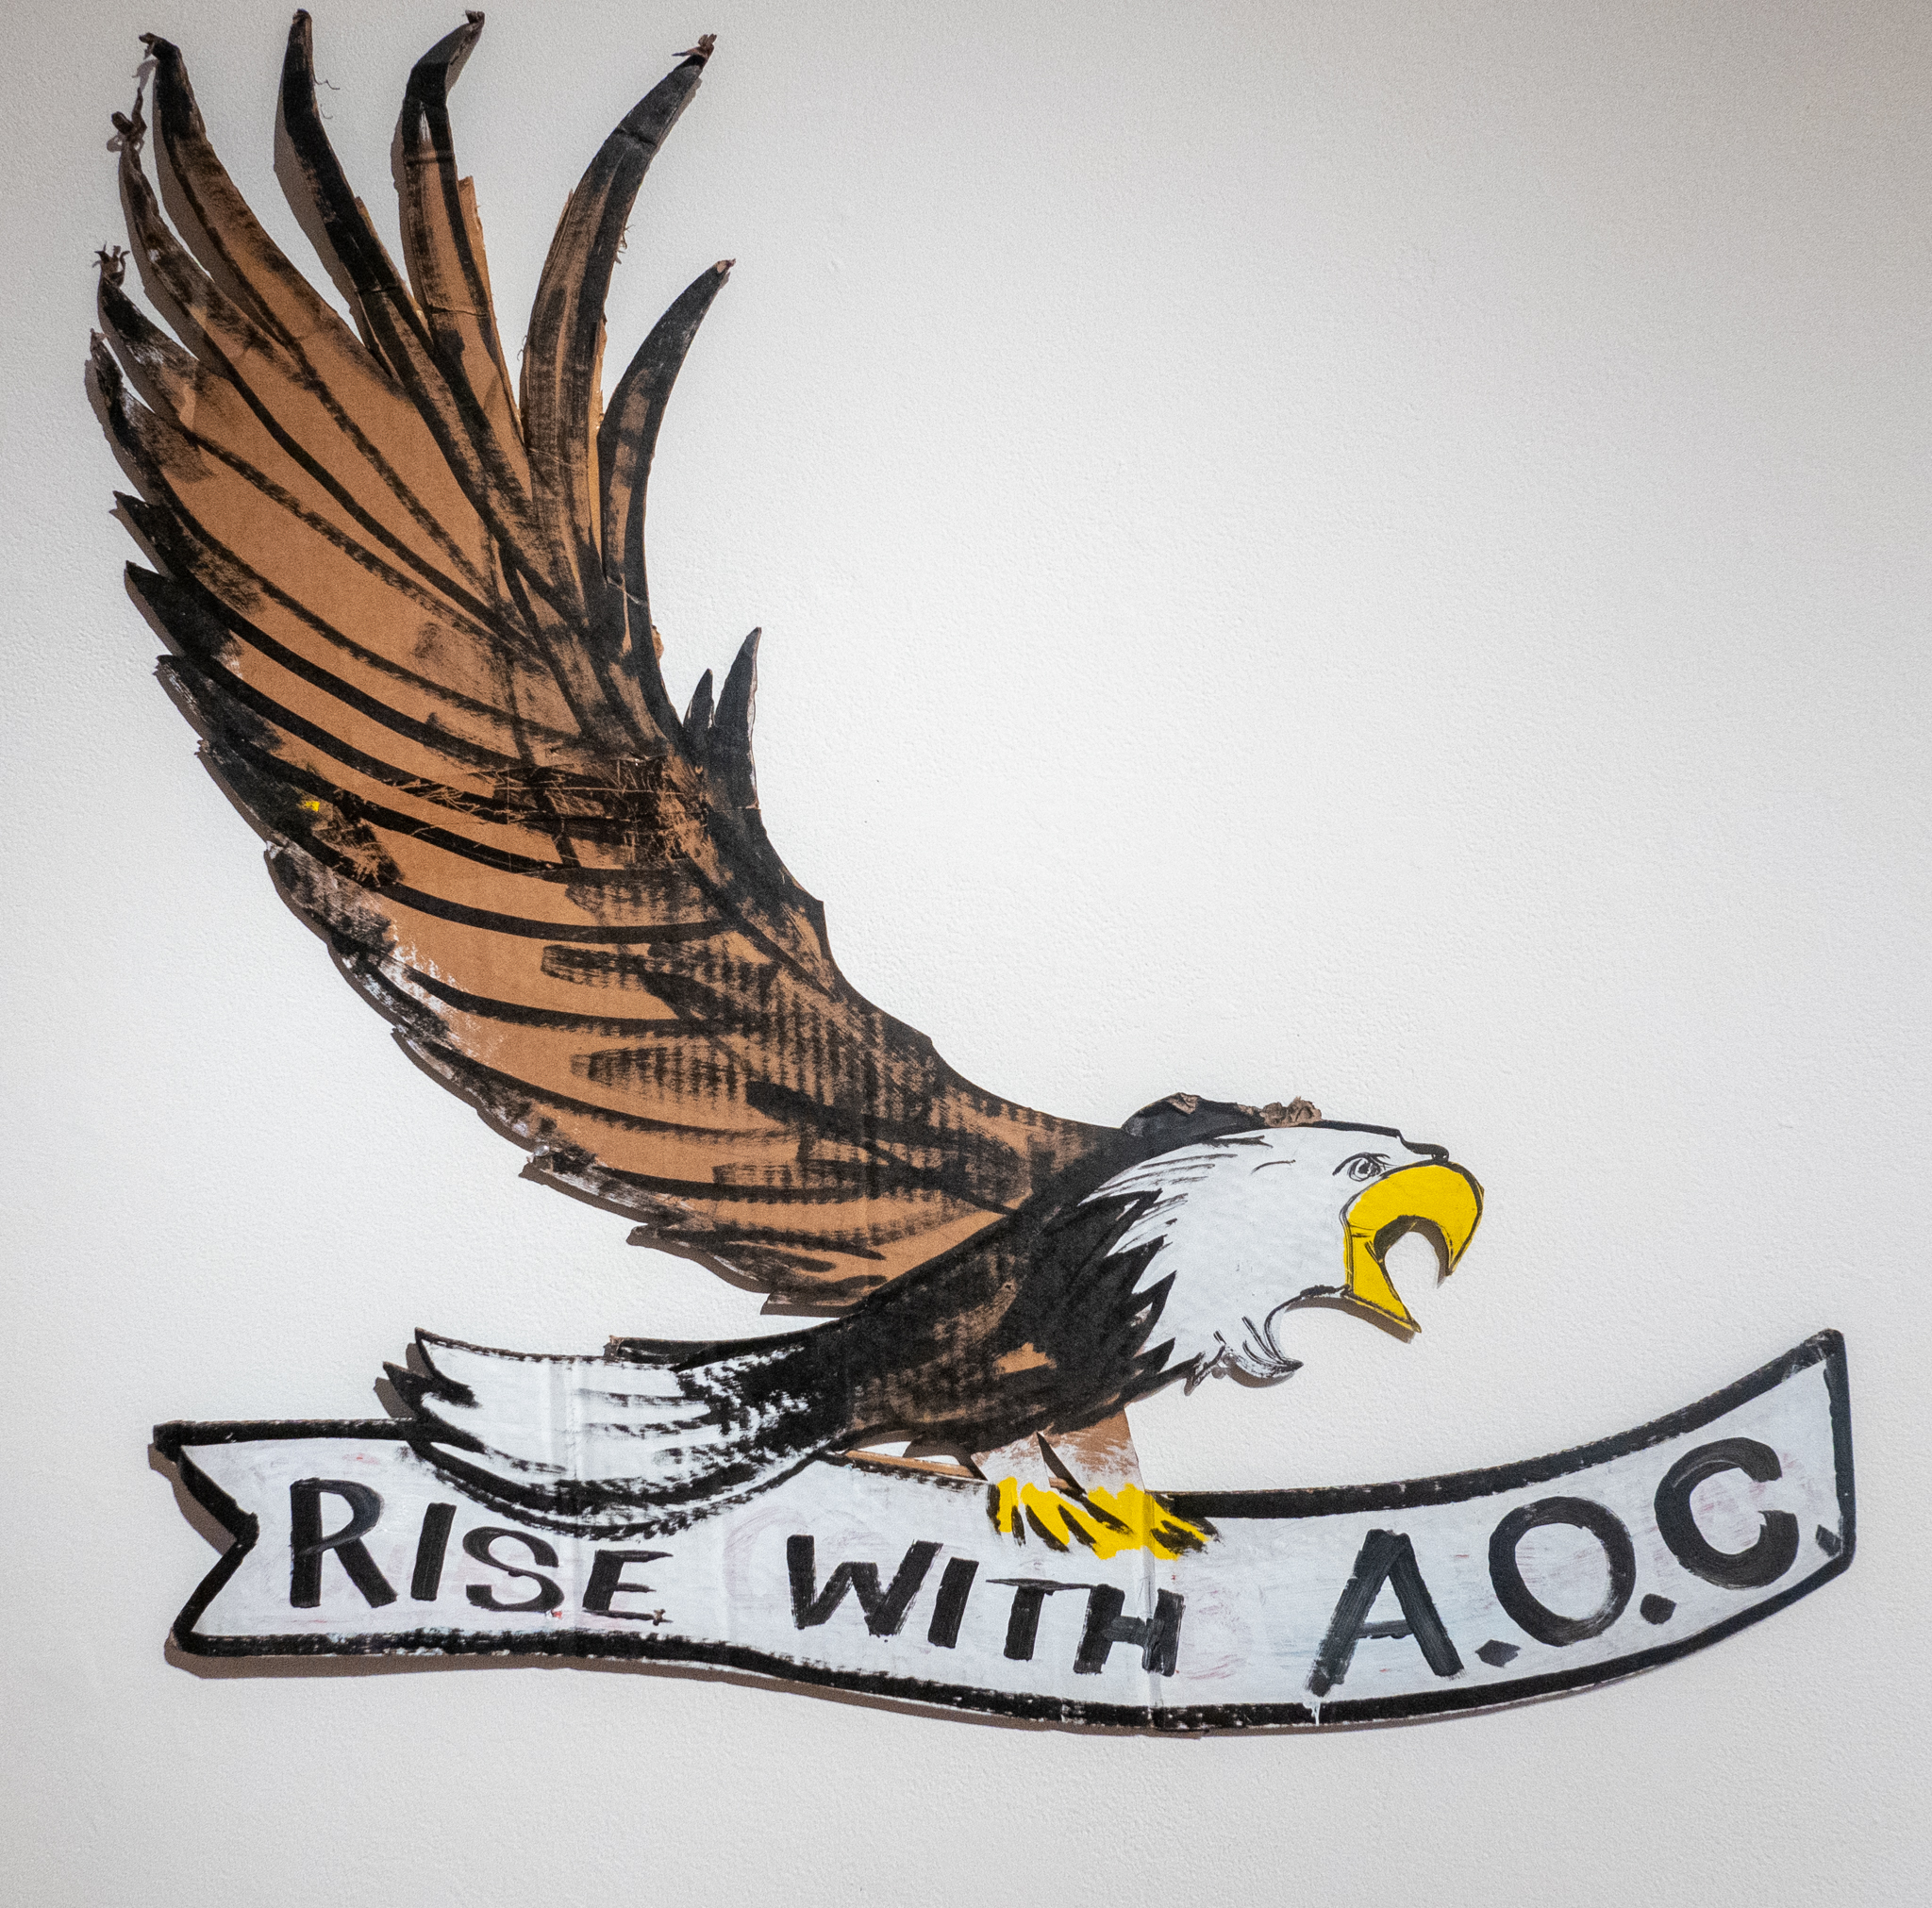 Rise With AOC